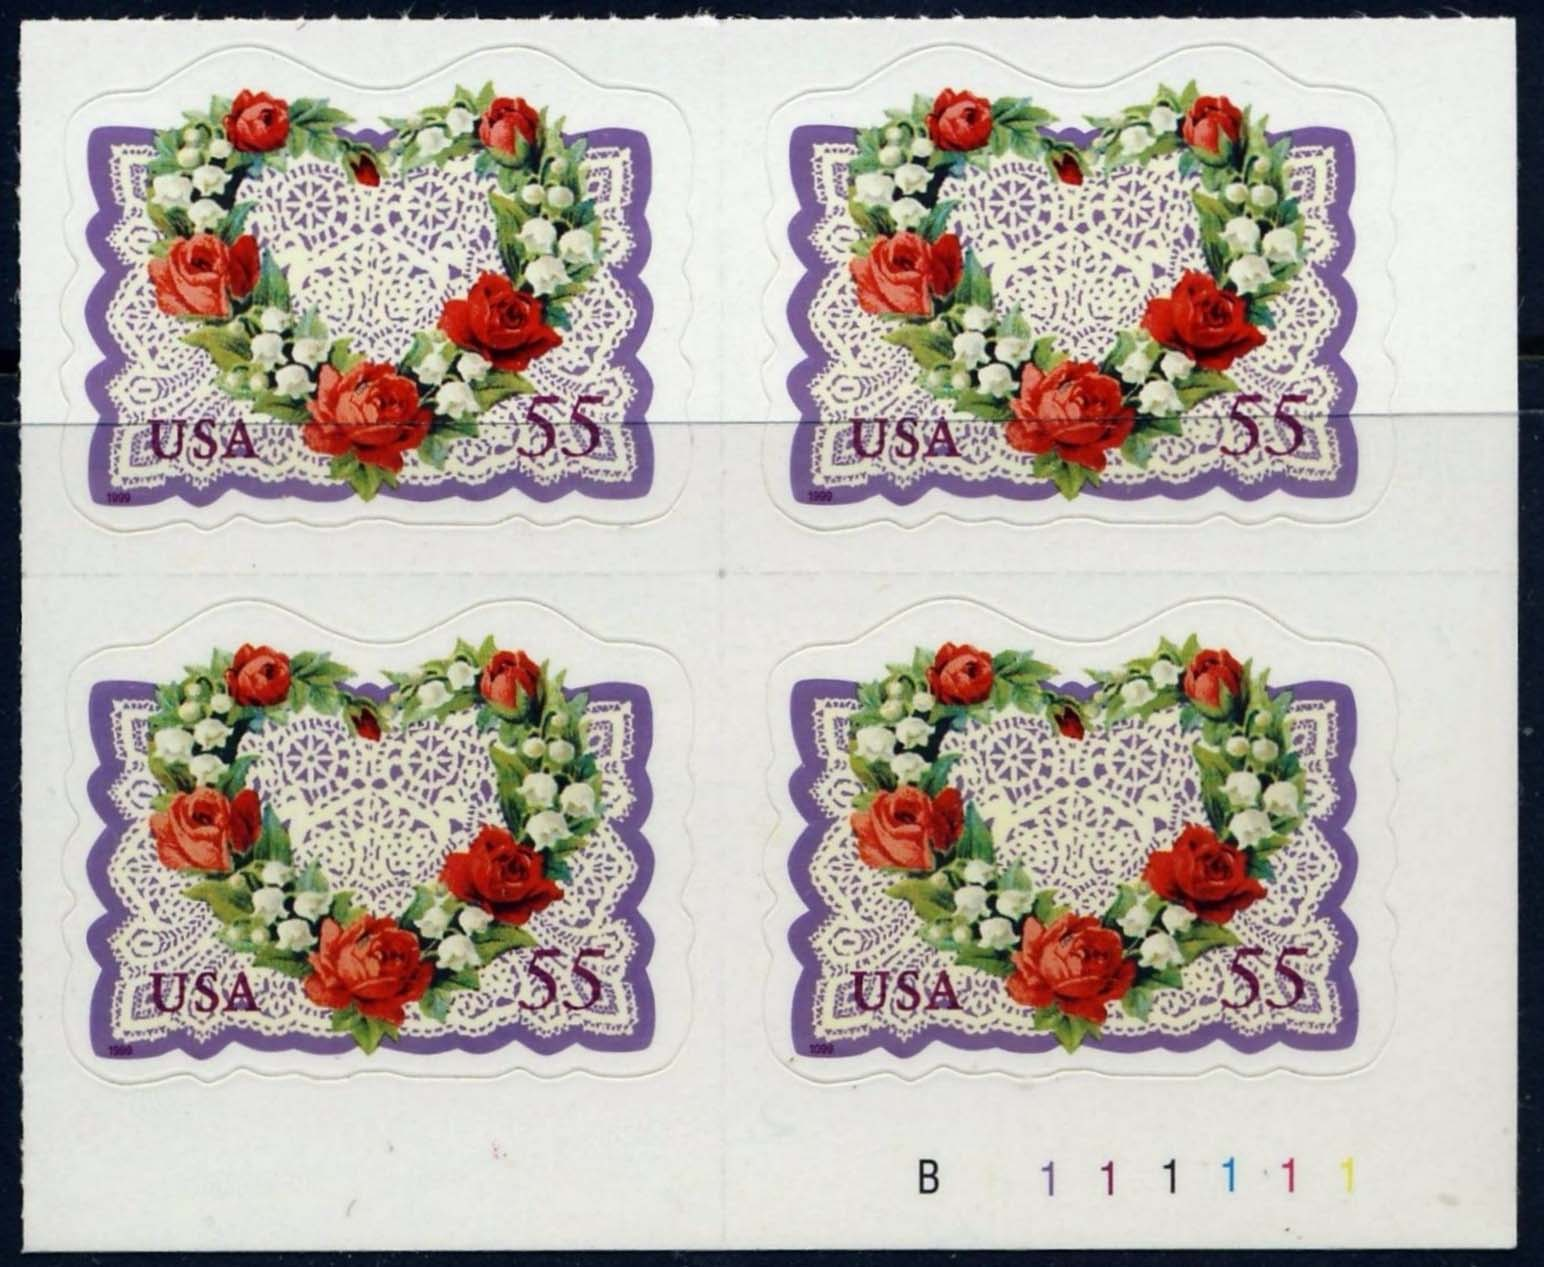 "Scott 3275 Plate Block of 4 (55 cents) <p> <a href=""/images/USA-Scott-3275-PB.jpg""><font color=green><b>View the image</a></b></font>"